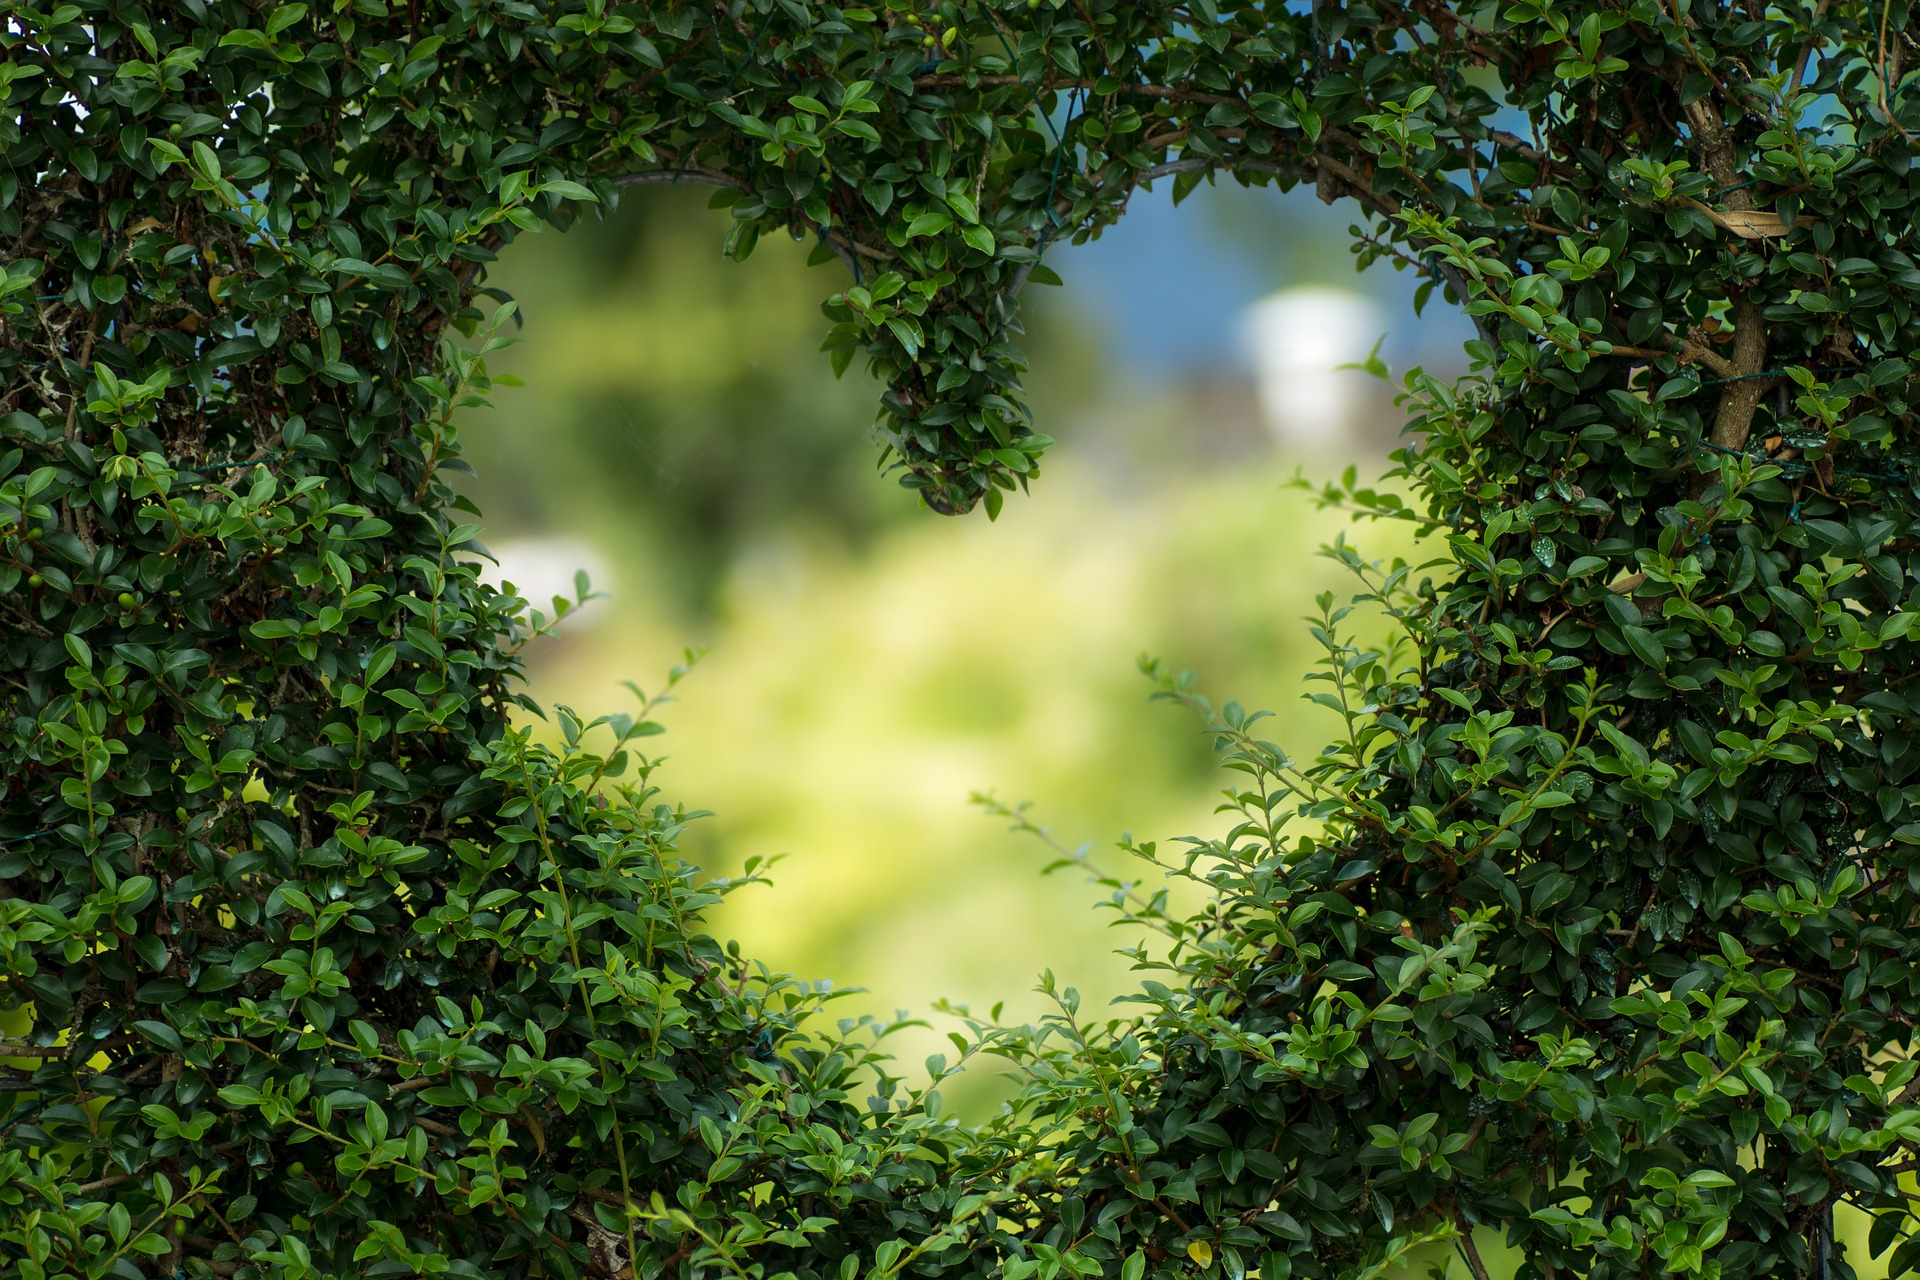 A heart in topiary